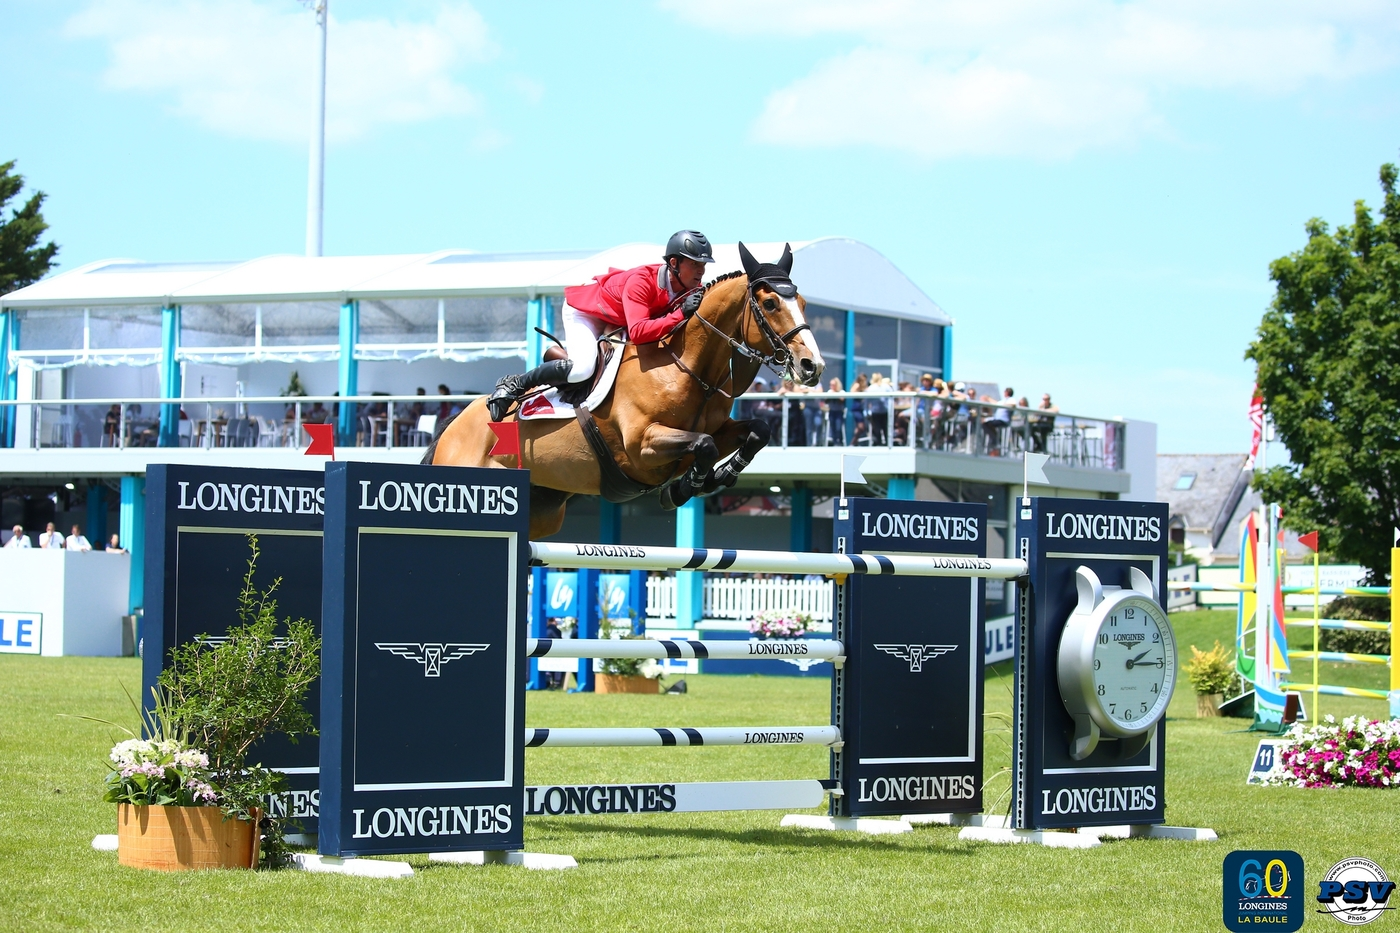 Longines Show Jumping Event: Team Switzerland claims victory to mark the 60th anniversary of the Longines Jumping International of La Baule 1